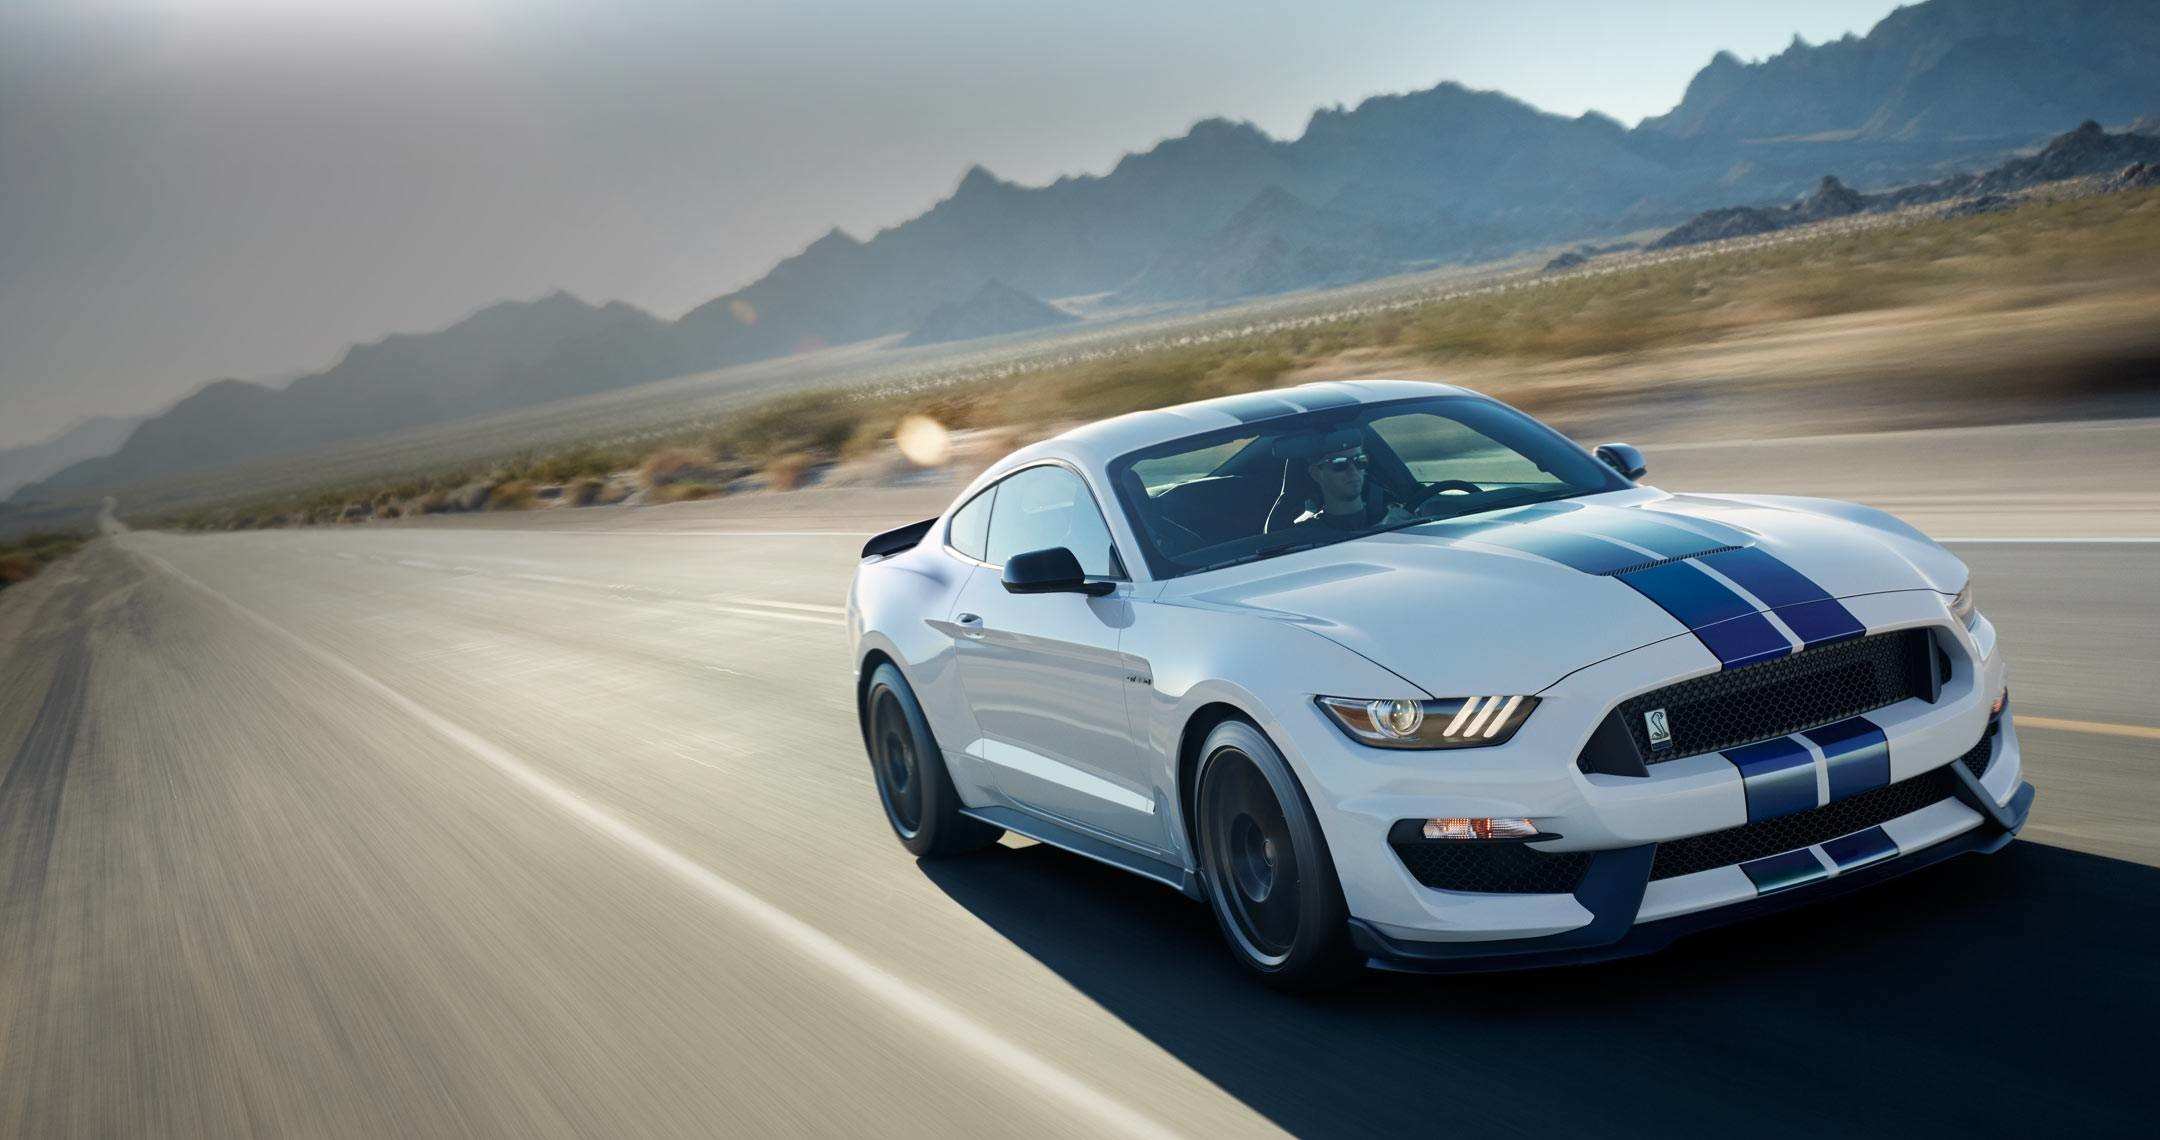 Res: 2160x1140, Images of Ford Mustang Shelby |